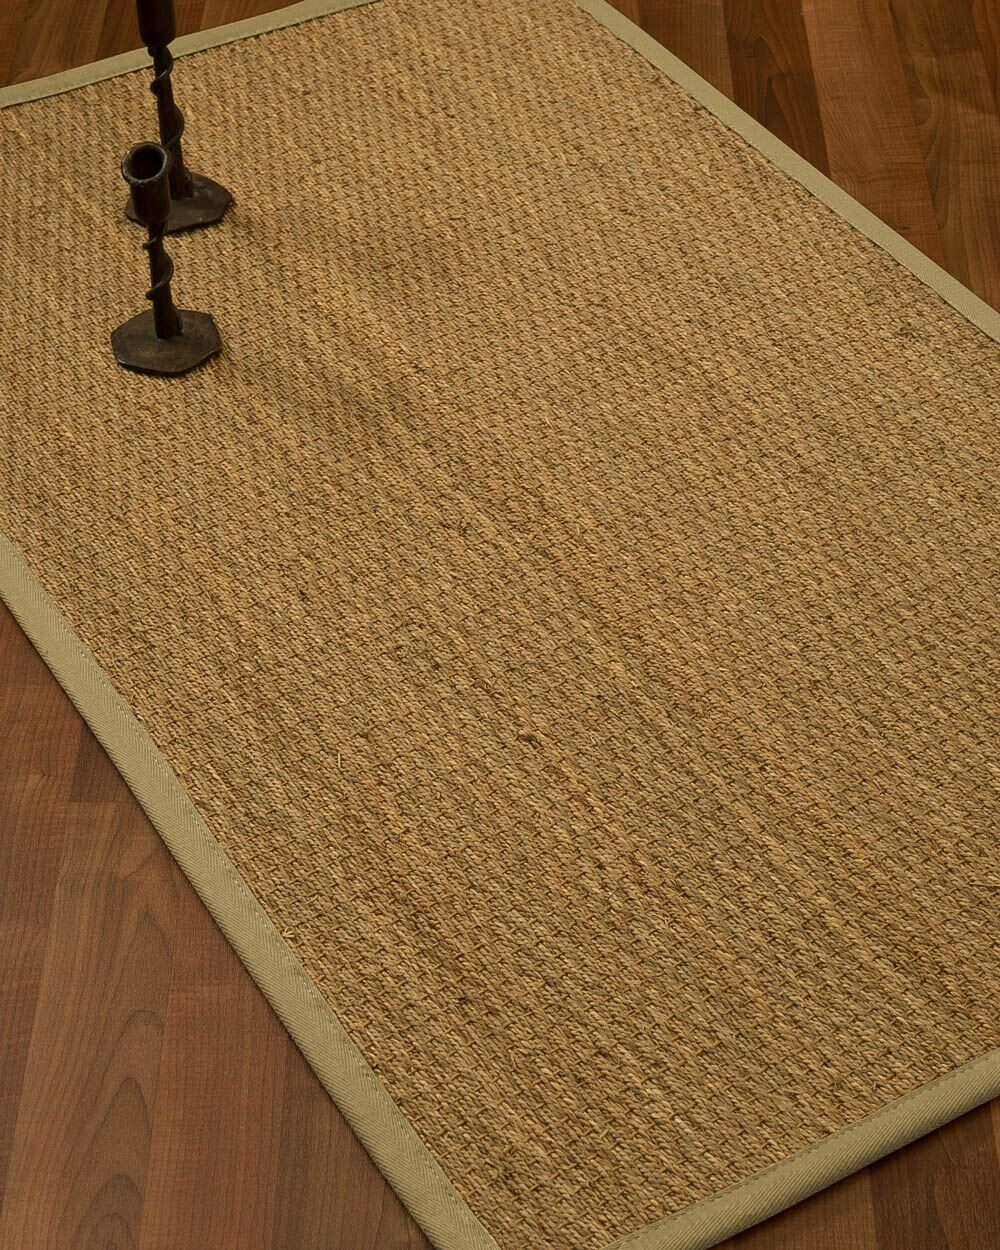 Vanmatre Border Hand-Woven Beige/Sand Area Rug Rug Size: Rectangle 4' x 6', Rug Pad Included: Yes